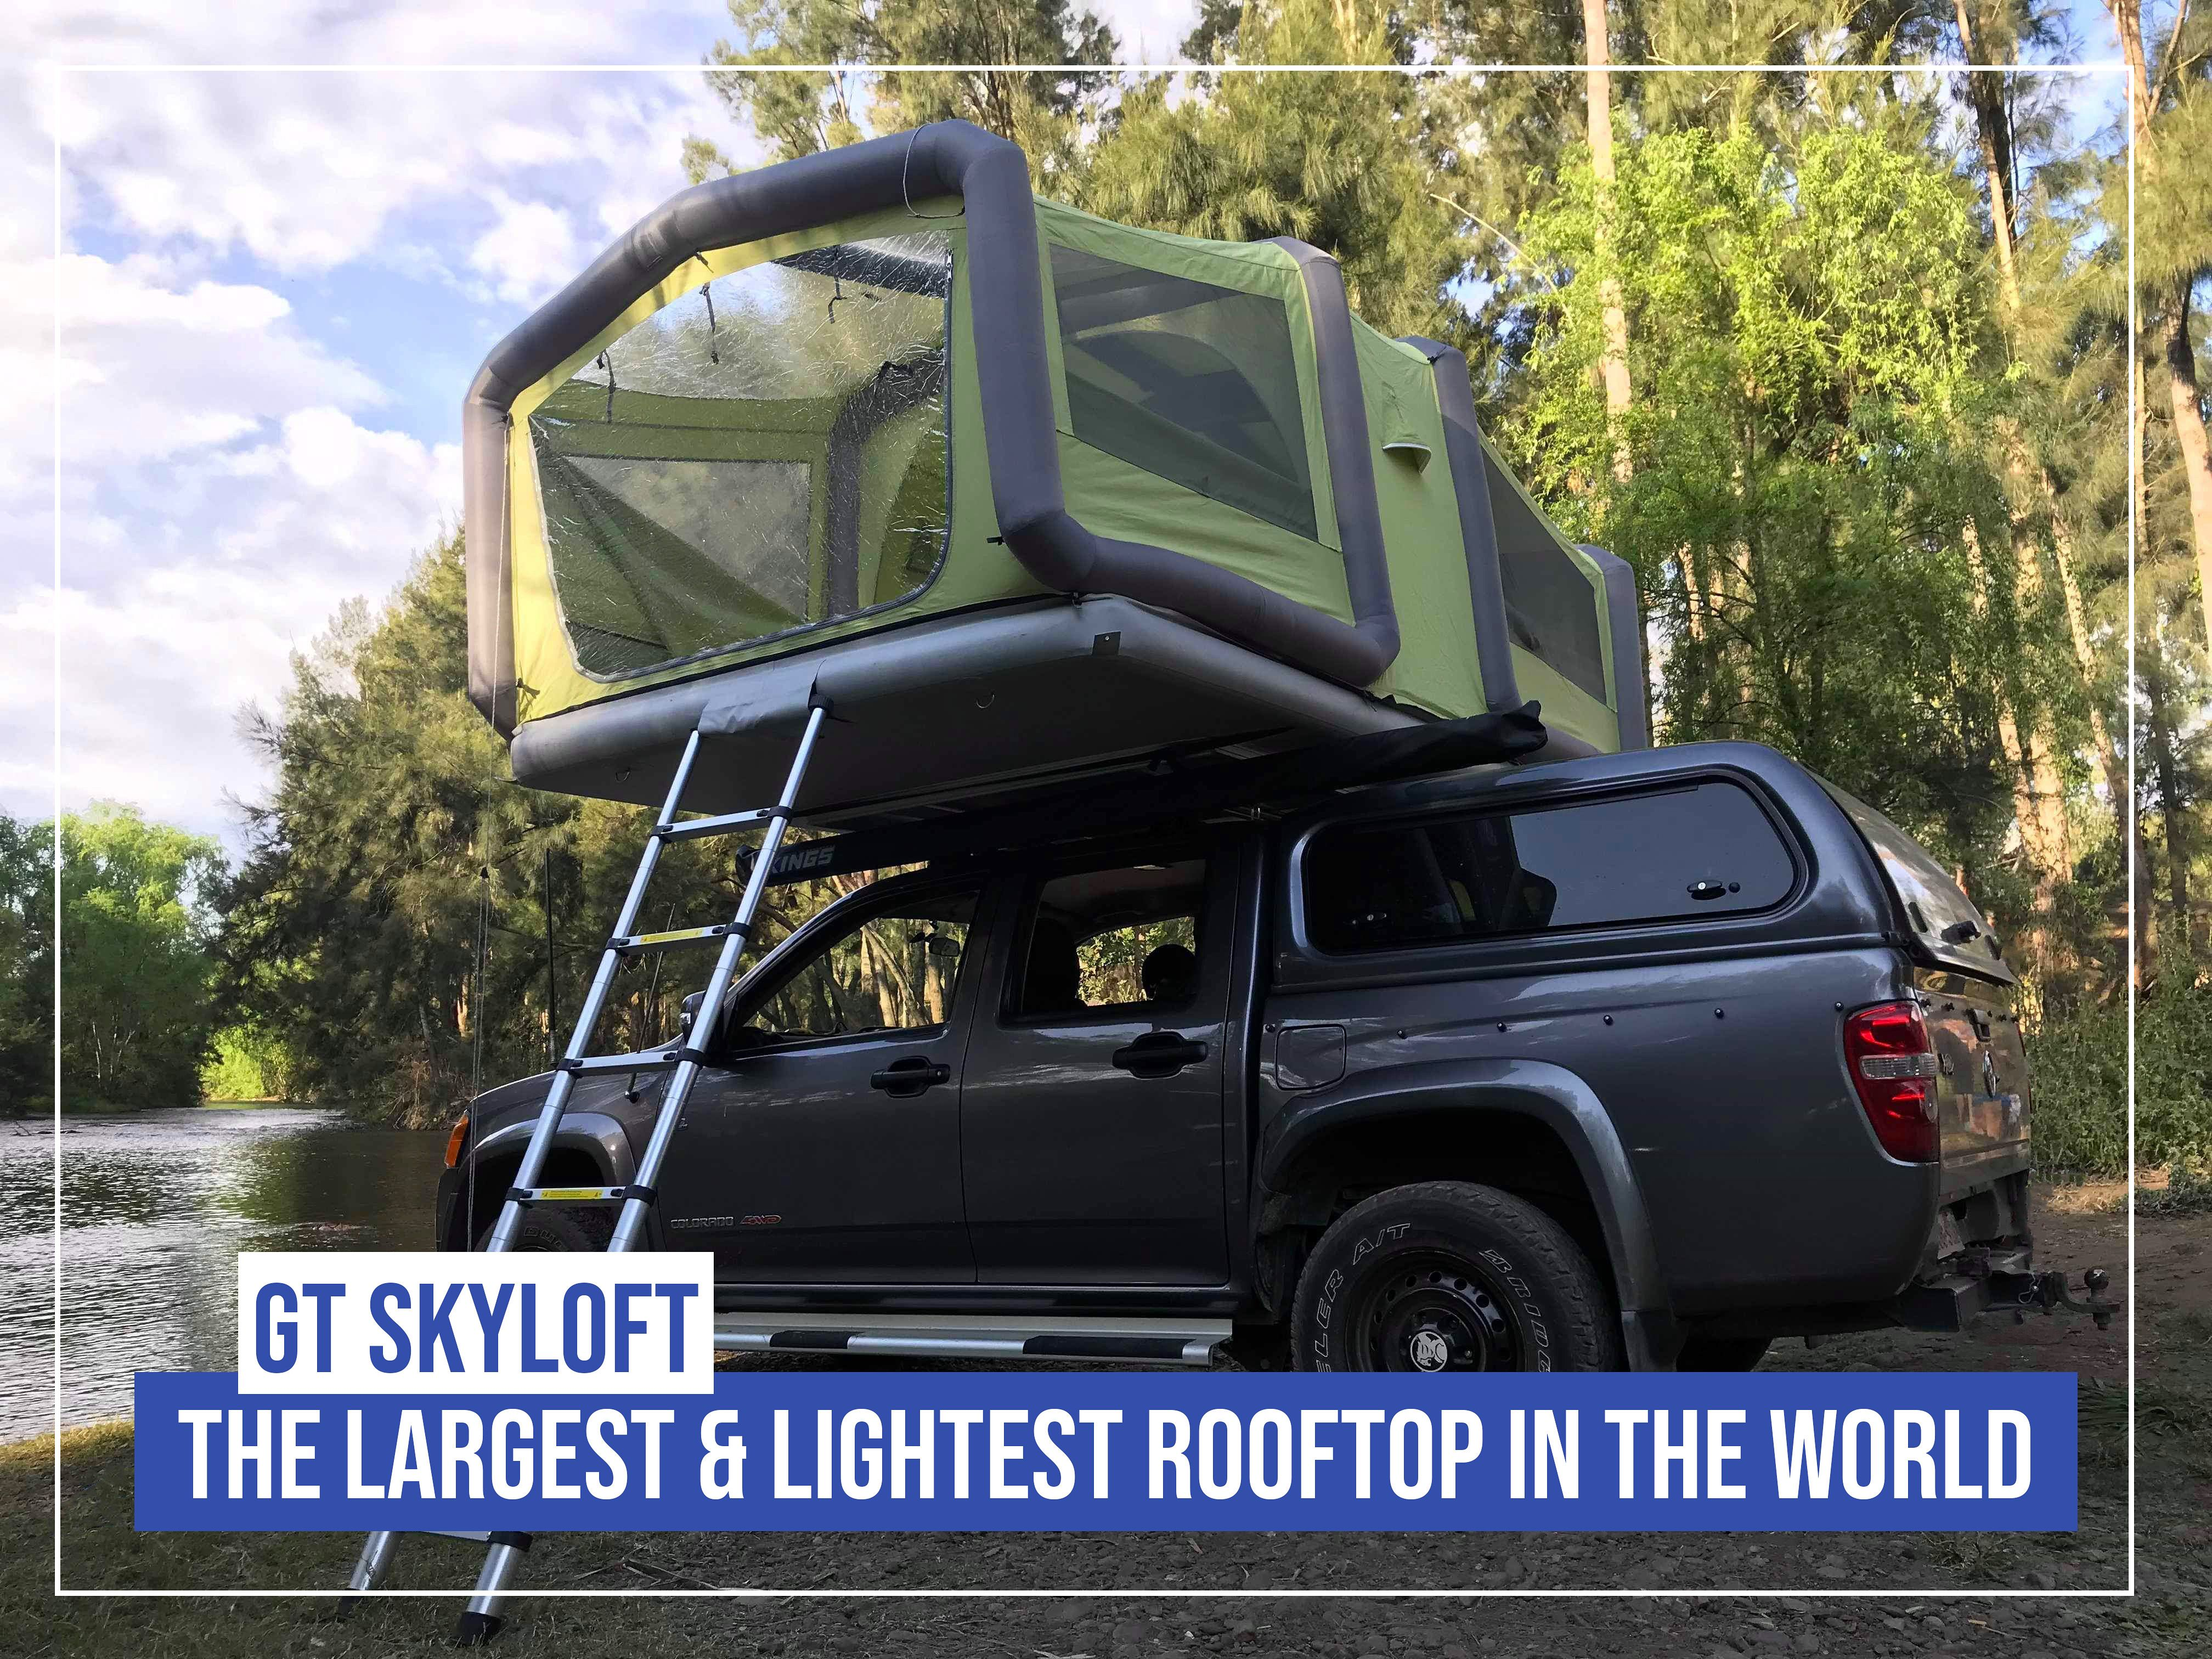 It S Officially Here The Gt Sky Loft Has Hit Our Australian Shores We Are So Excited To Release This Product Soon And Can Roof Top Tent Sky Ceiling Australia